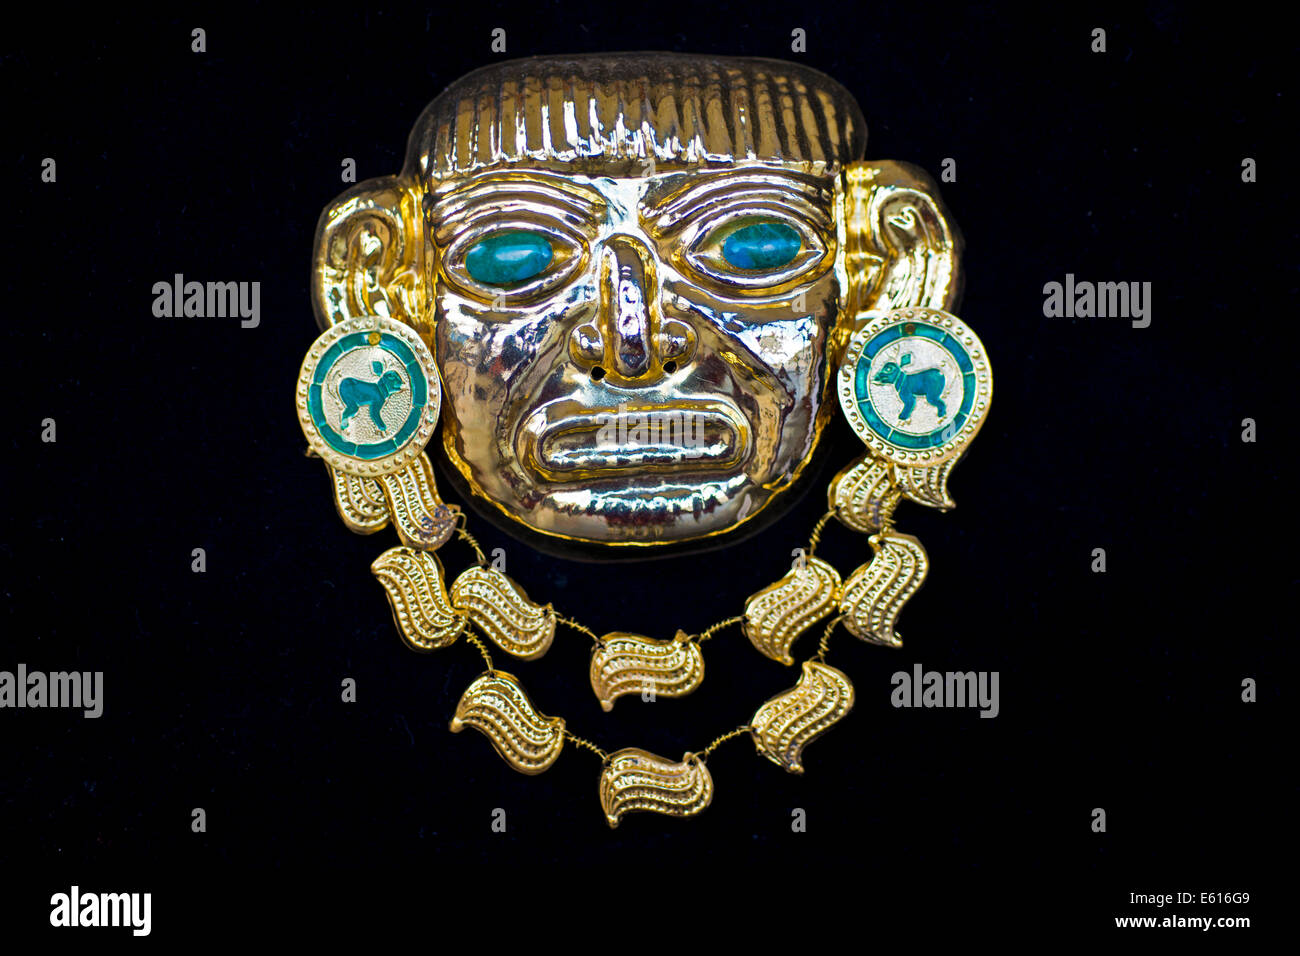 Golden pre-Columbian Inca mask, replica, sheet brass with semi-precious stones, souvenir, Cusco, Peru - Stock Image